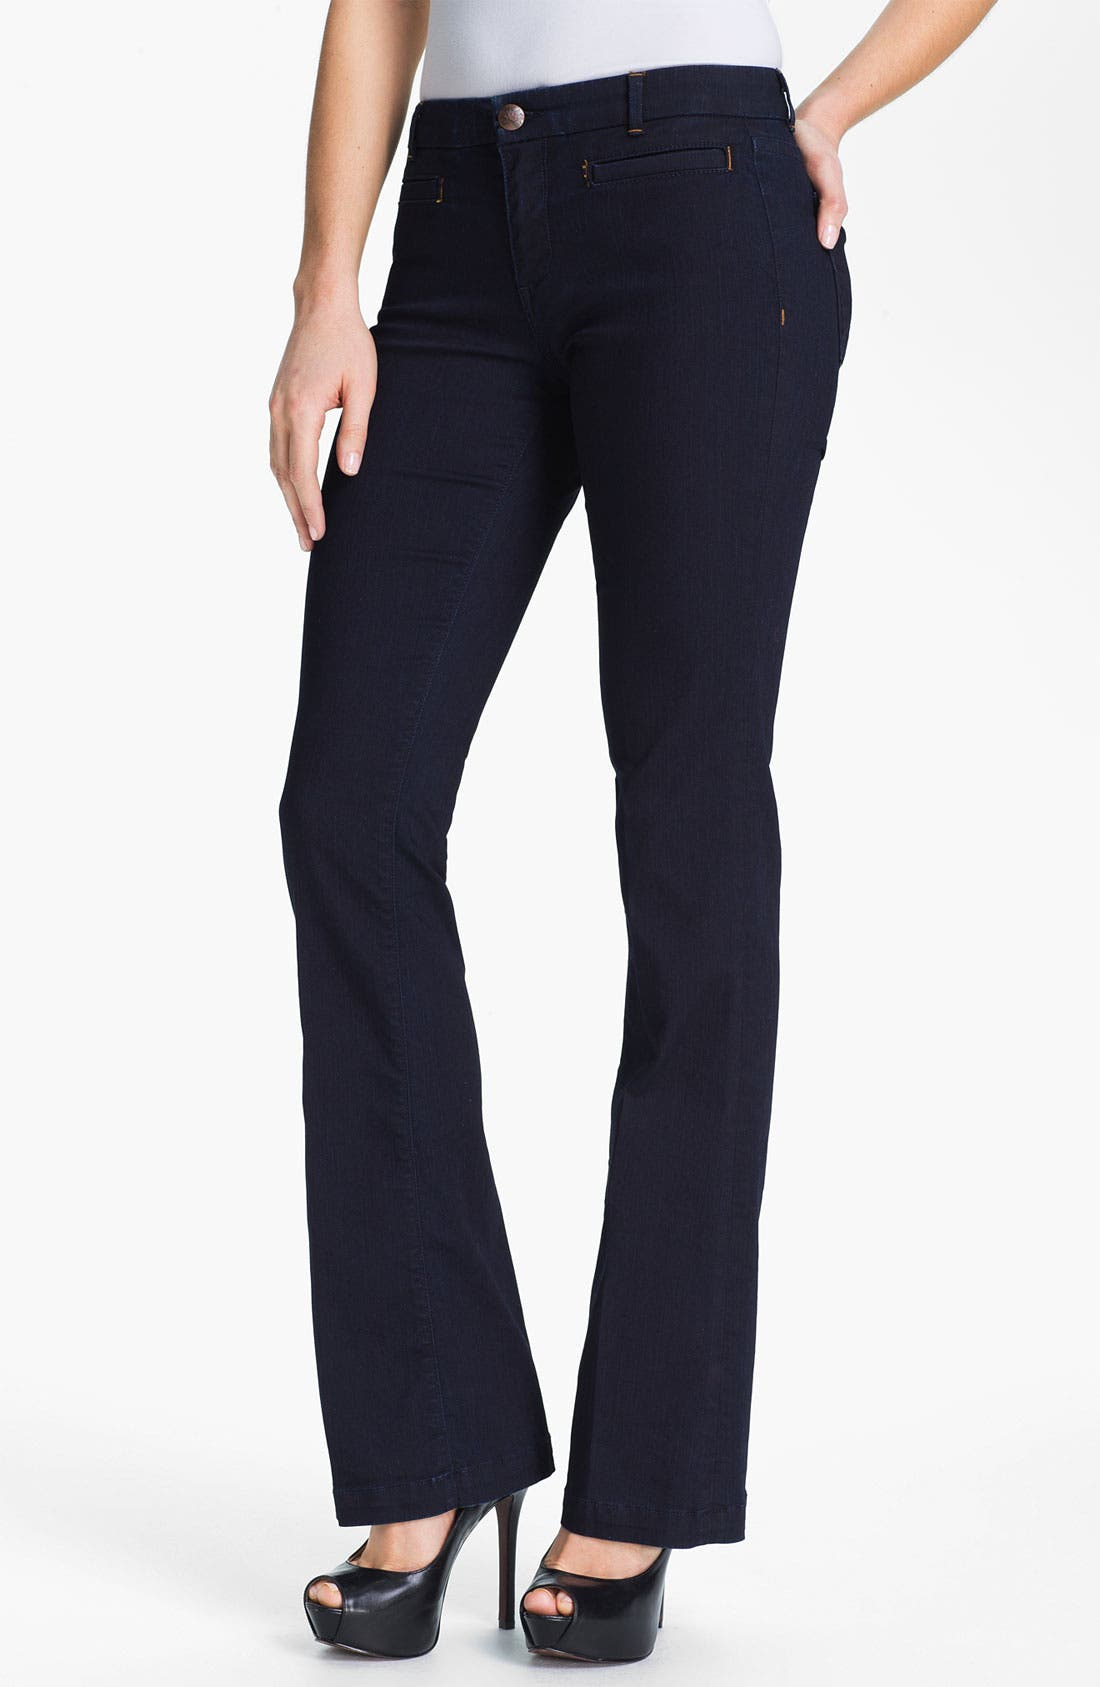 Alternate Image 1 Selected - Agave 'Fortuna' Trouser Jeans (Lookout) (Online Exclusive)